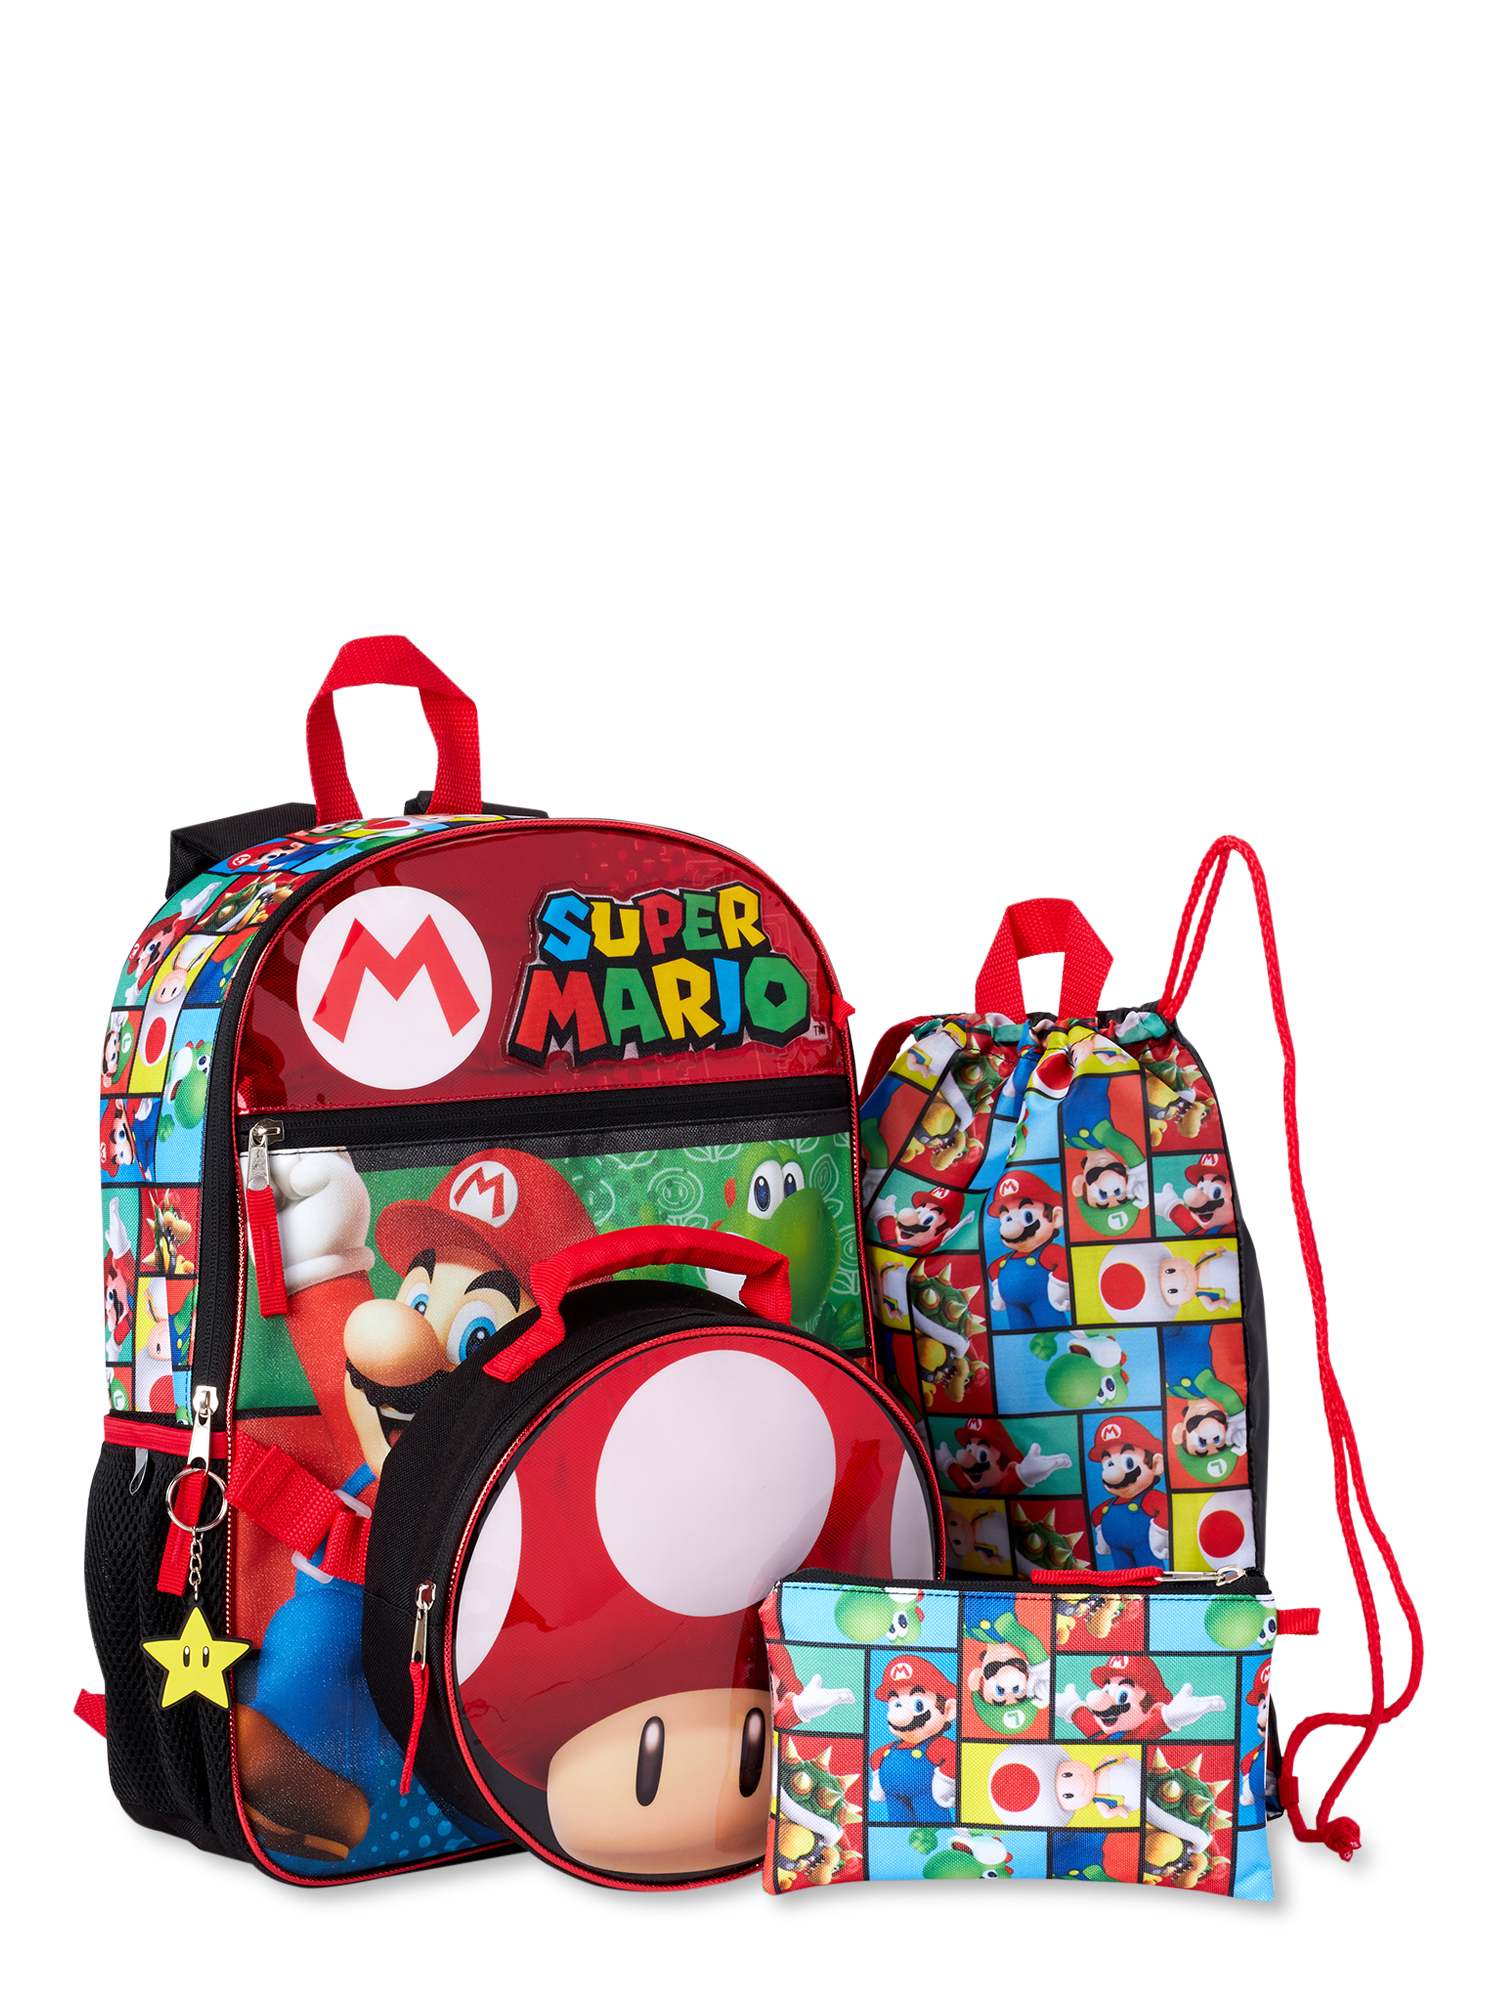 Super Mario 5 Piece Backpack Set ONLY $12.99 (Reg $17) | Back to School